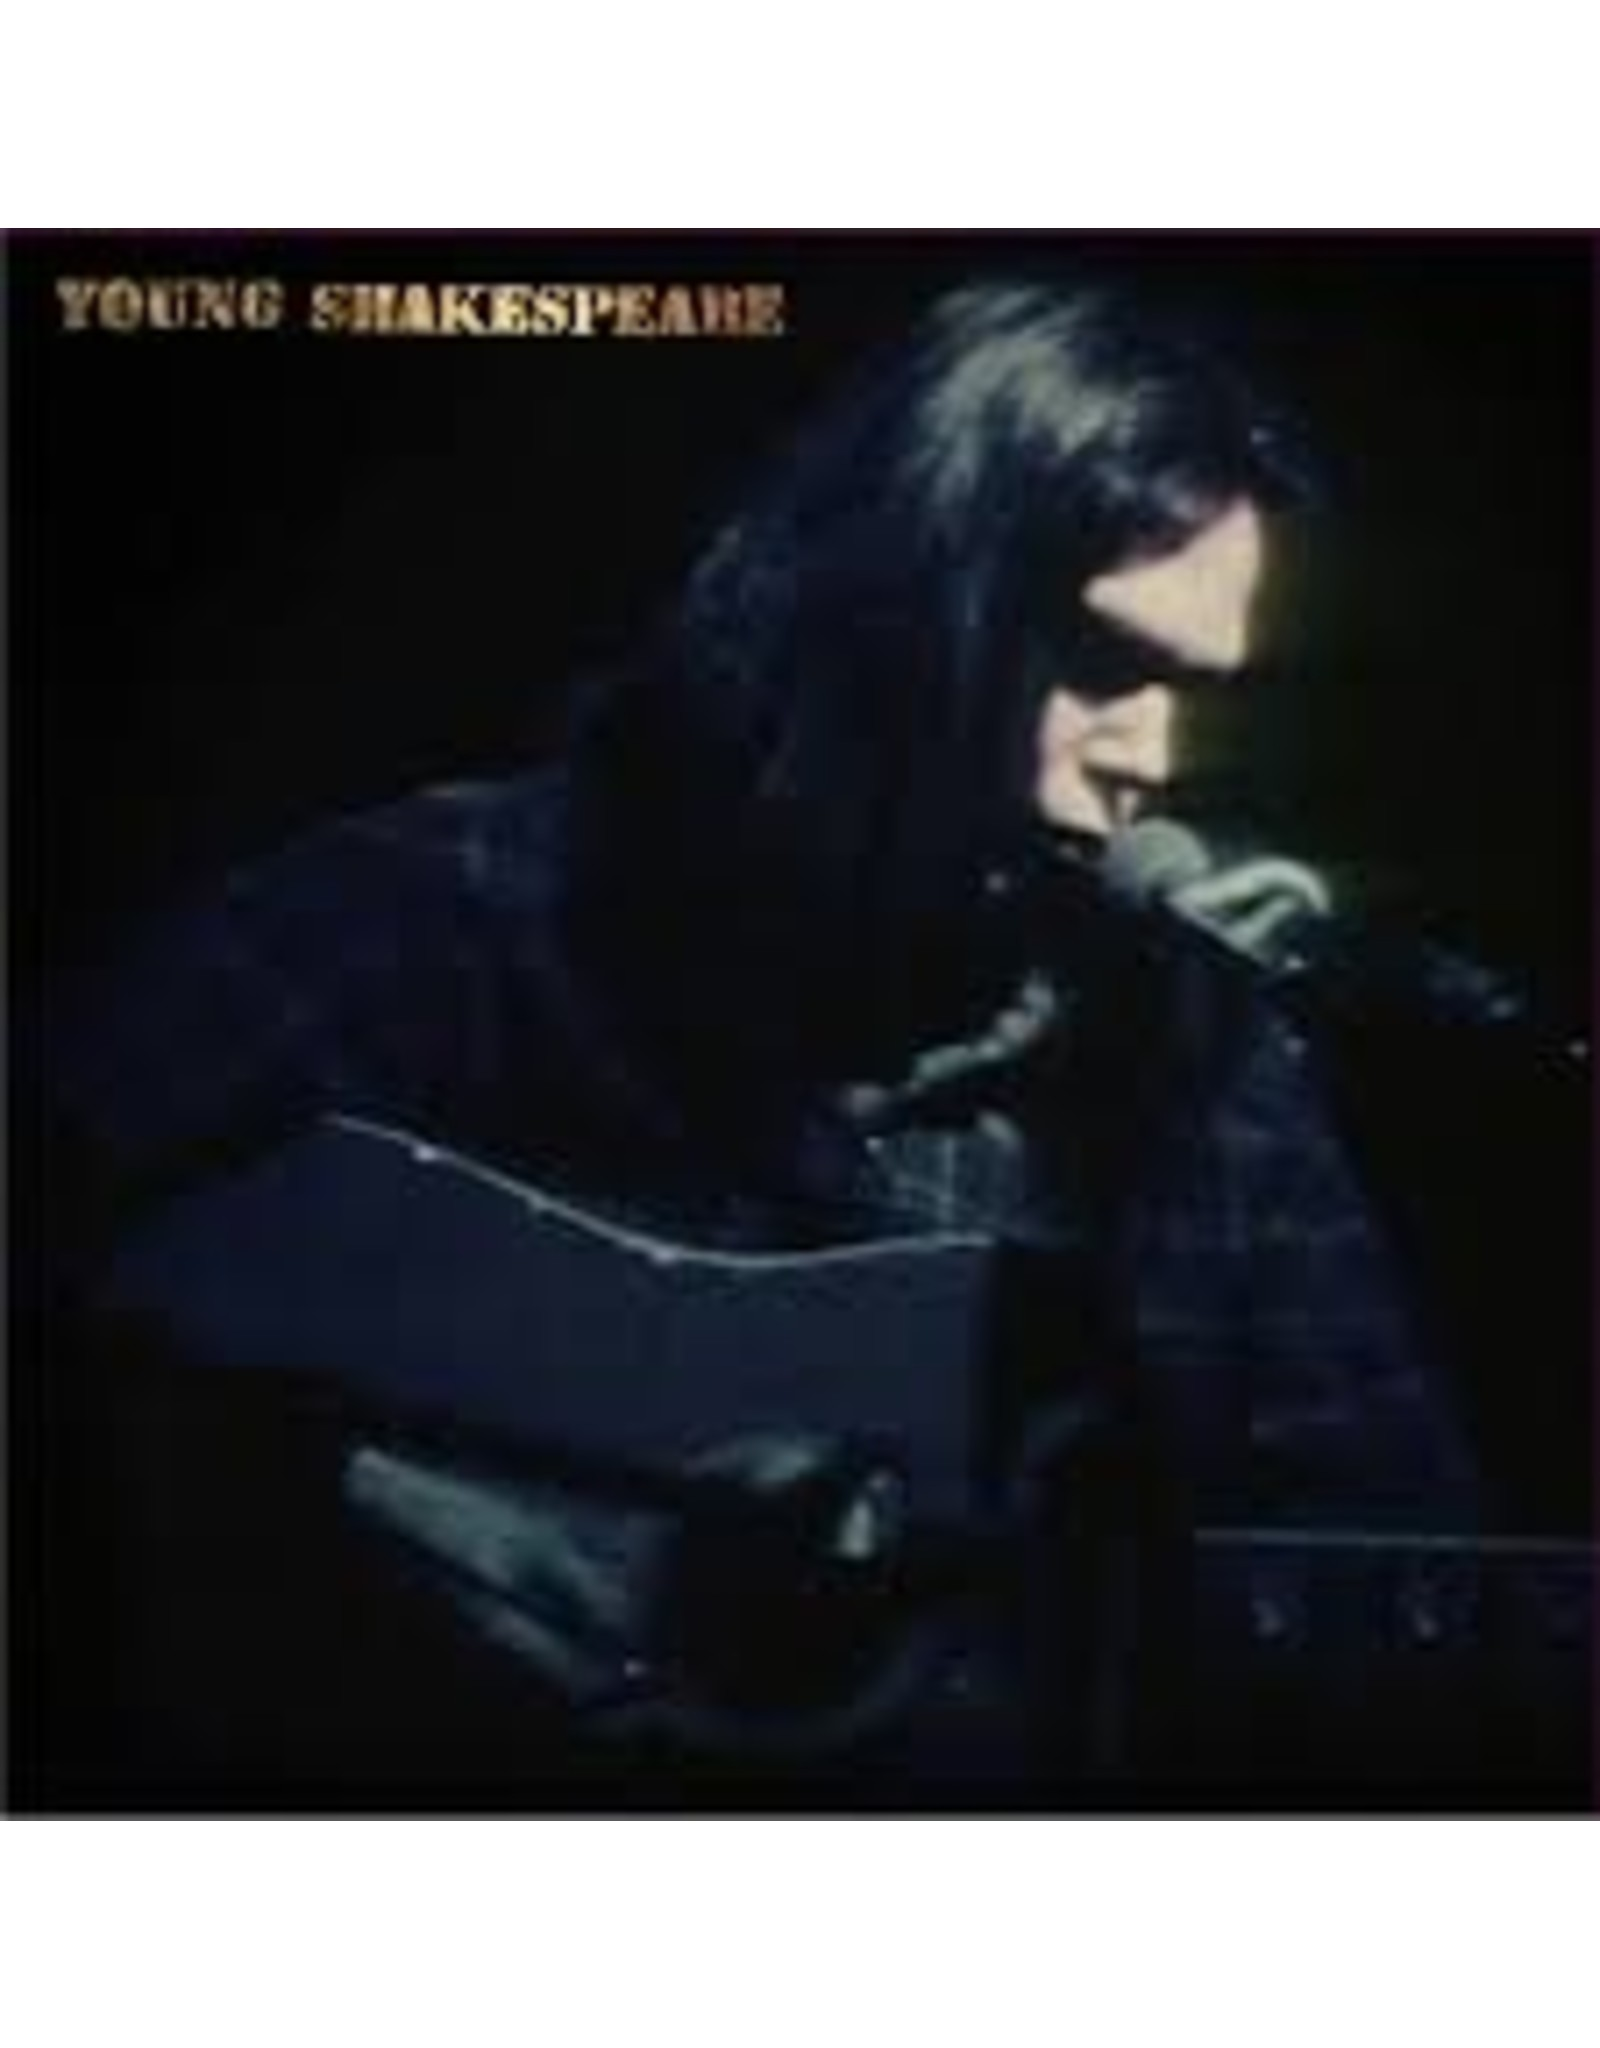 Young, Neil - Young Shakespeare LP